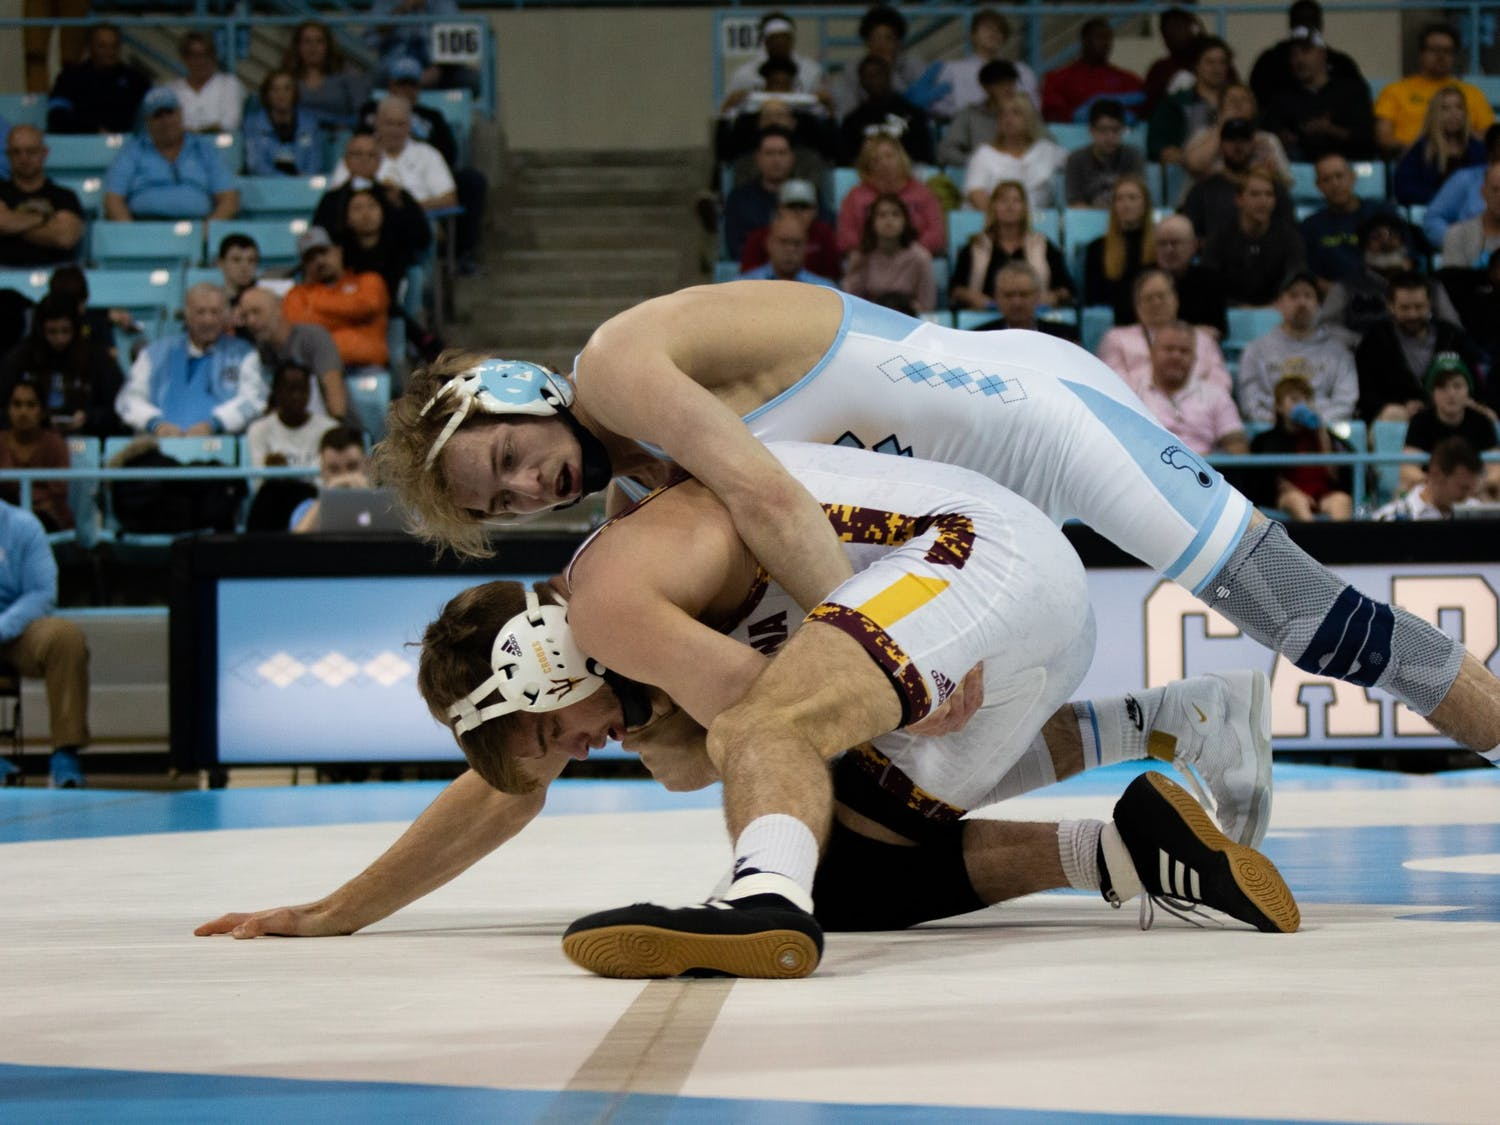 UNC's Zach Sherman, a redshirt sophomore at the time, wrestles against Arizona State redshirt junior Cory Crooks in Carmichael Arena on Sunday, Feb. 23, 2020.